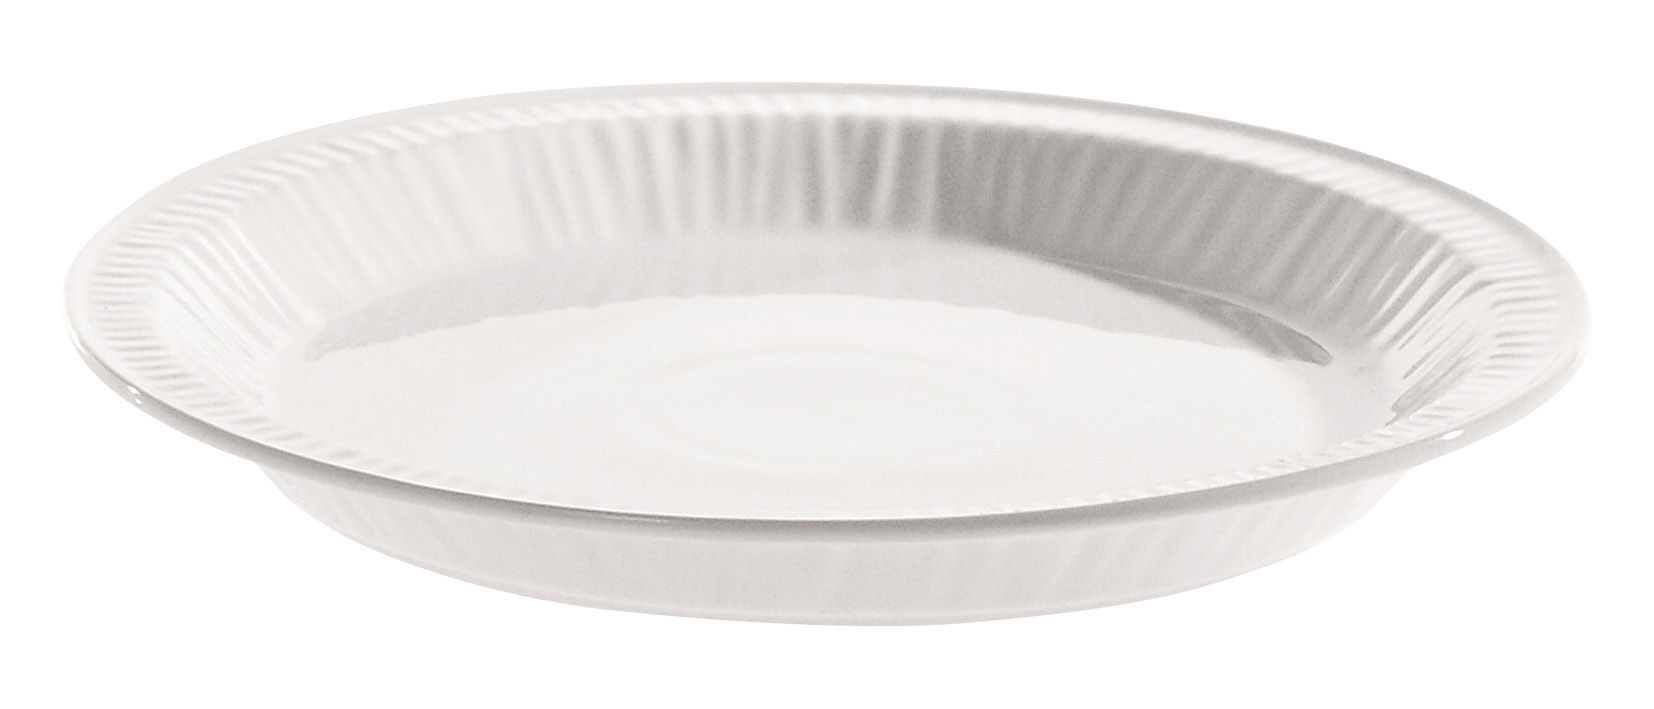 Tableware - Plates - Estetico quotidiano Dessert plate - Ø 20 cm - China by Seletti - White / Dessert plate Ø 20 cm - China